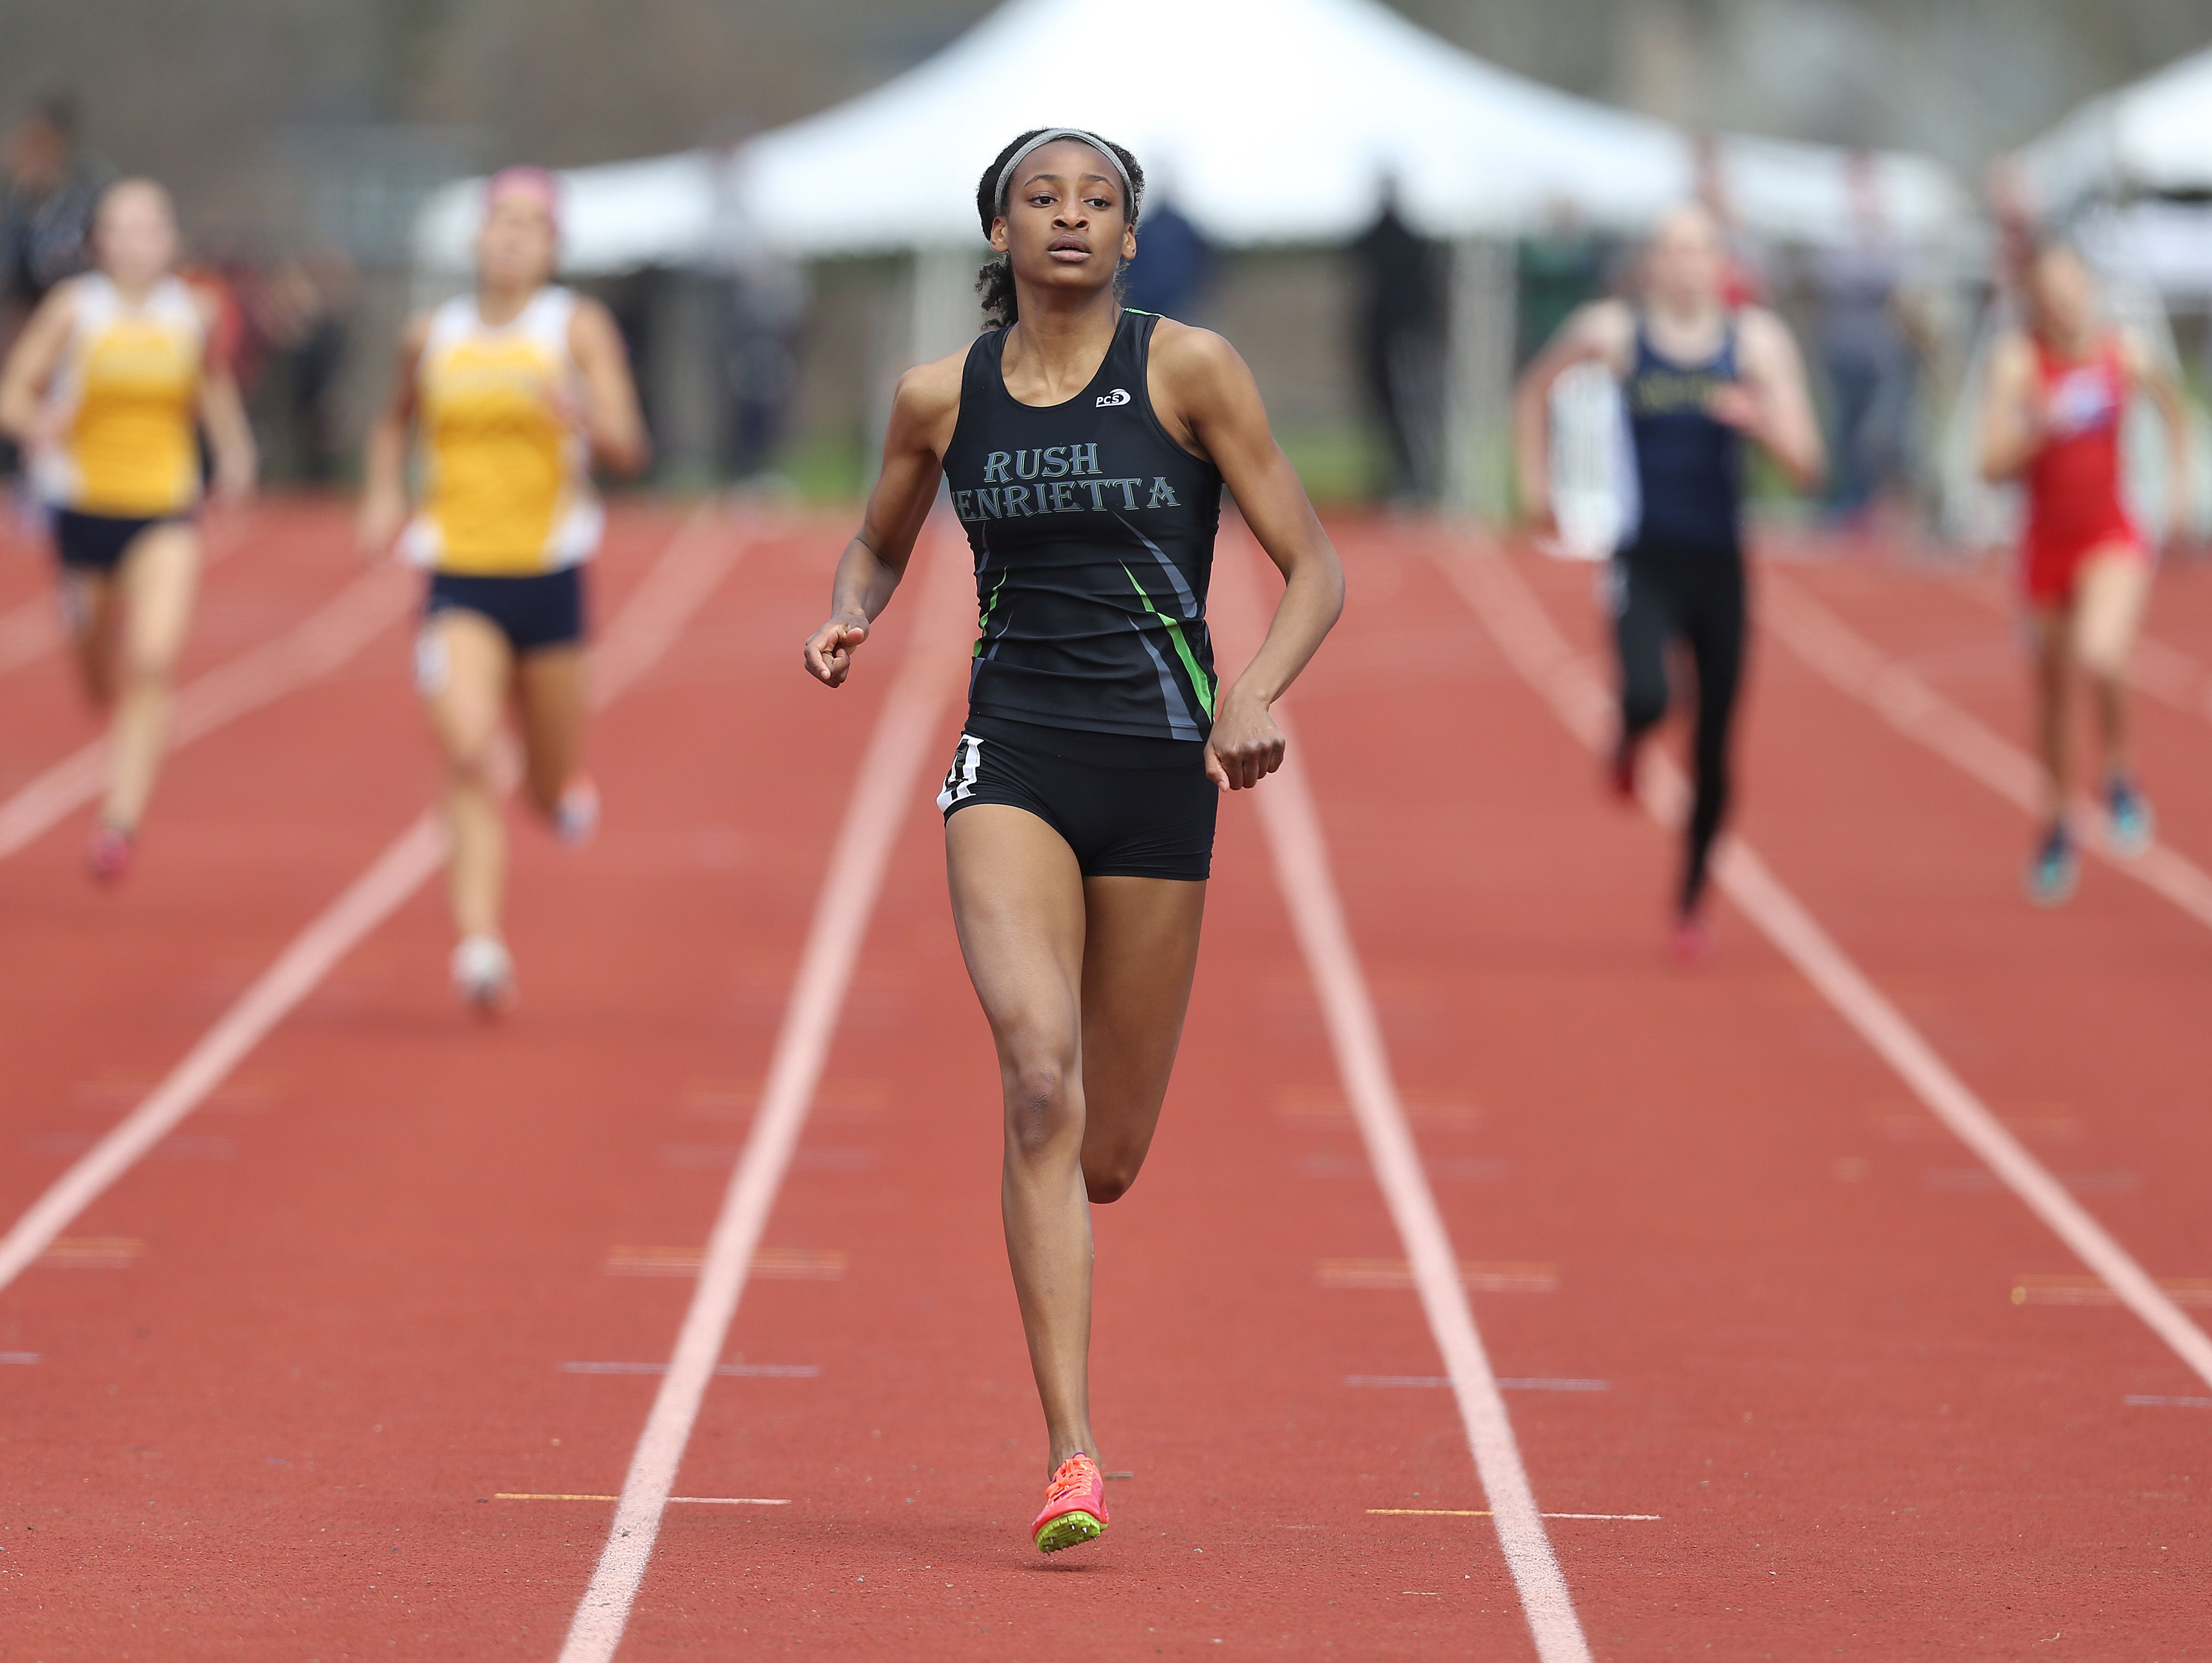 Rush-Henrietta's Sammy Watson, shown here during a meet at Penfield during spring 2016, won the women's 800-meter dash final of the IAAF World U20 Championships on Thursday in Poland